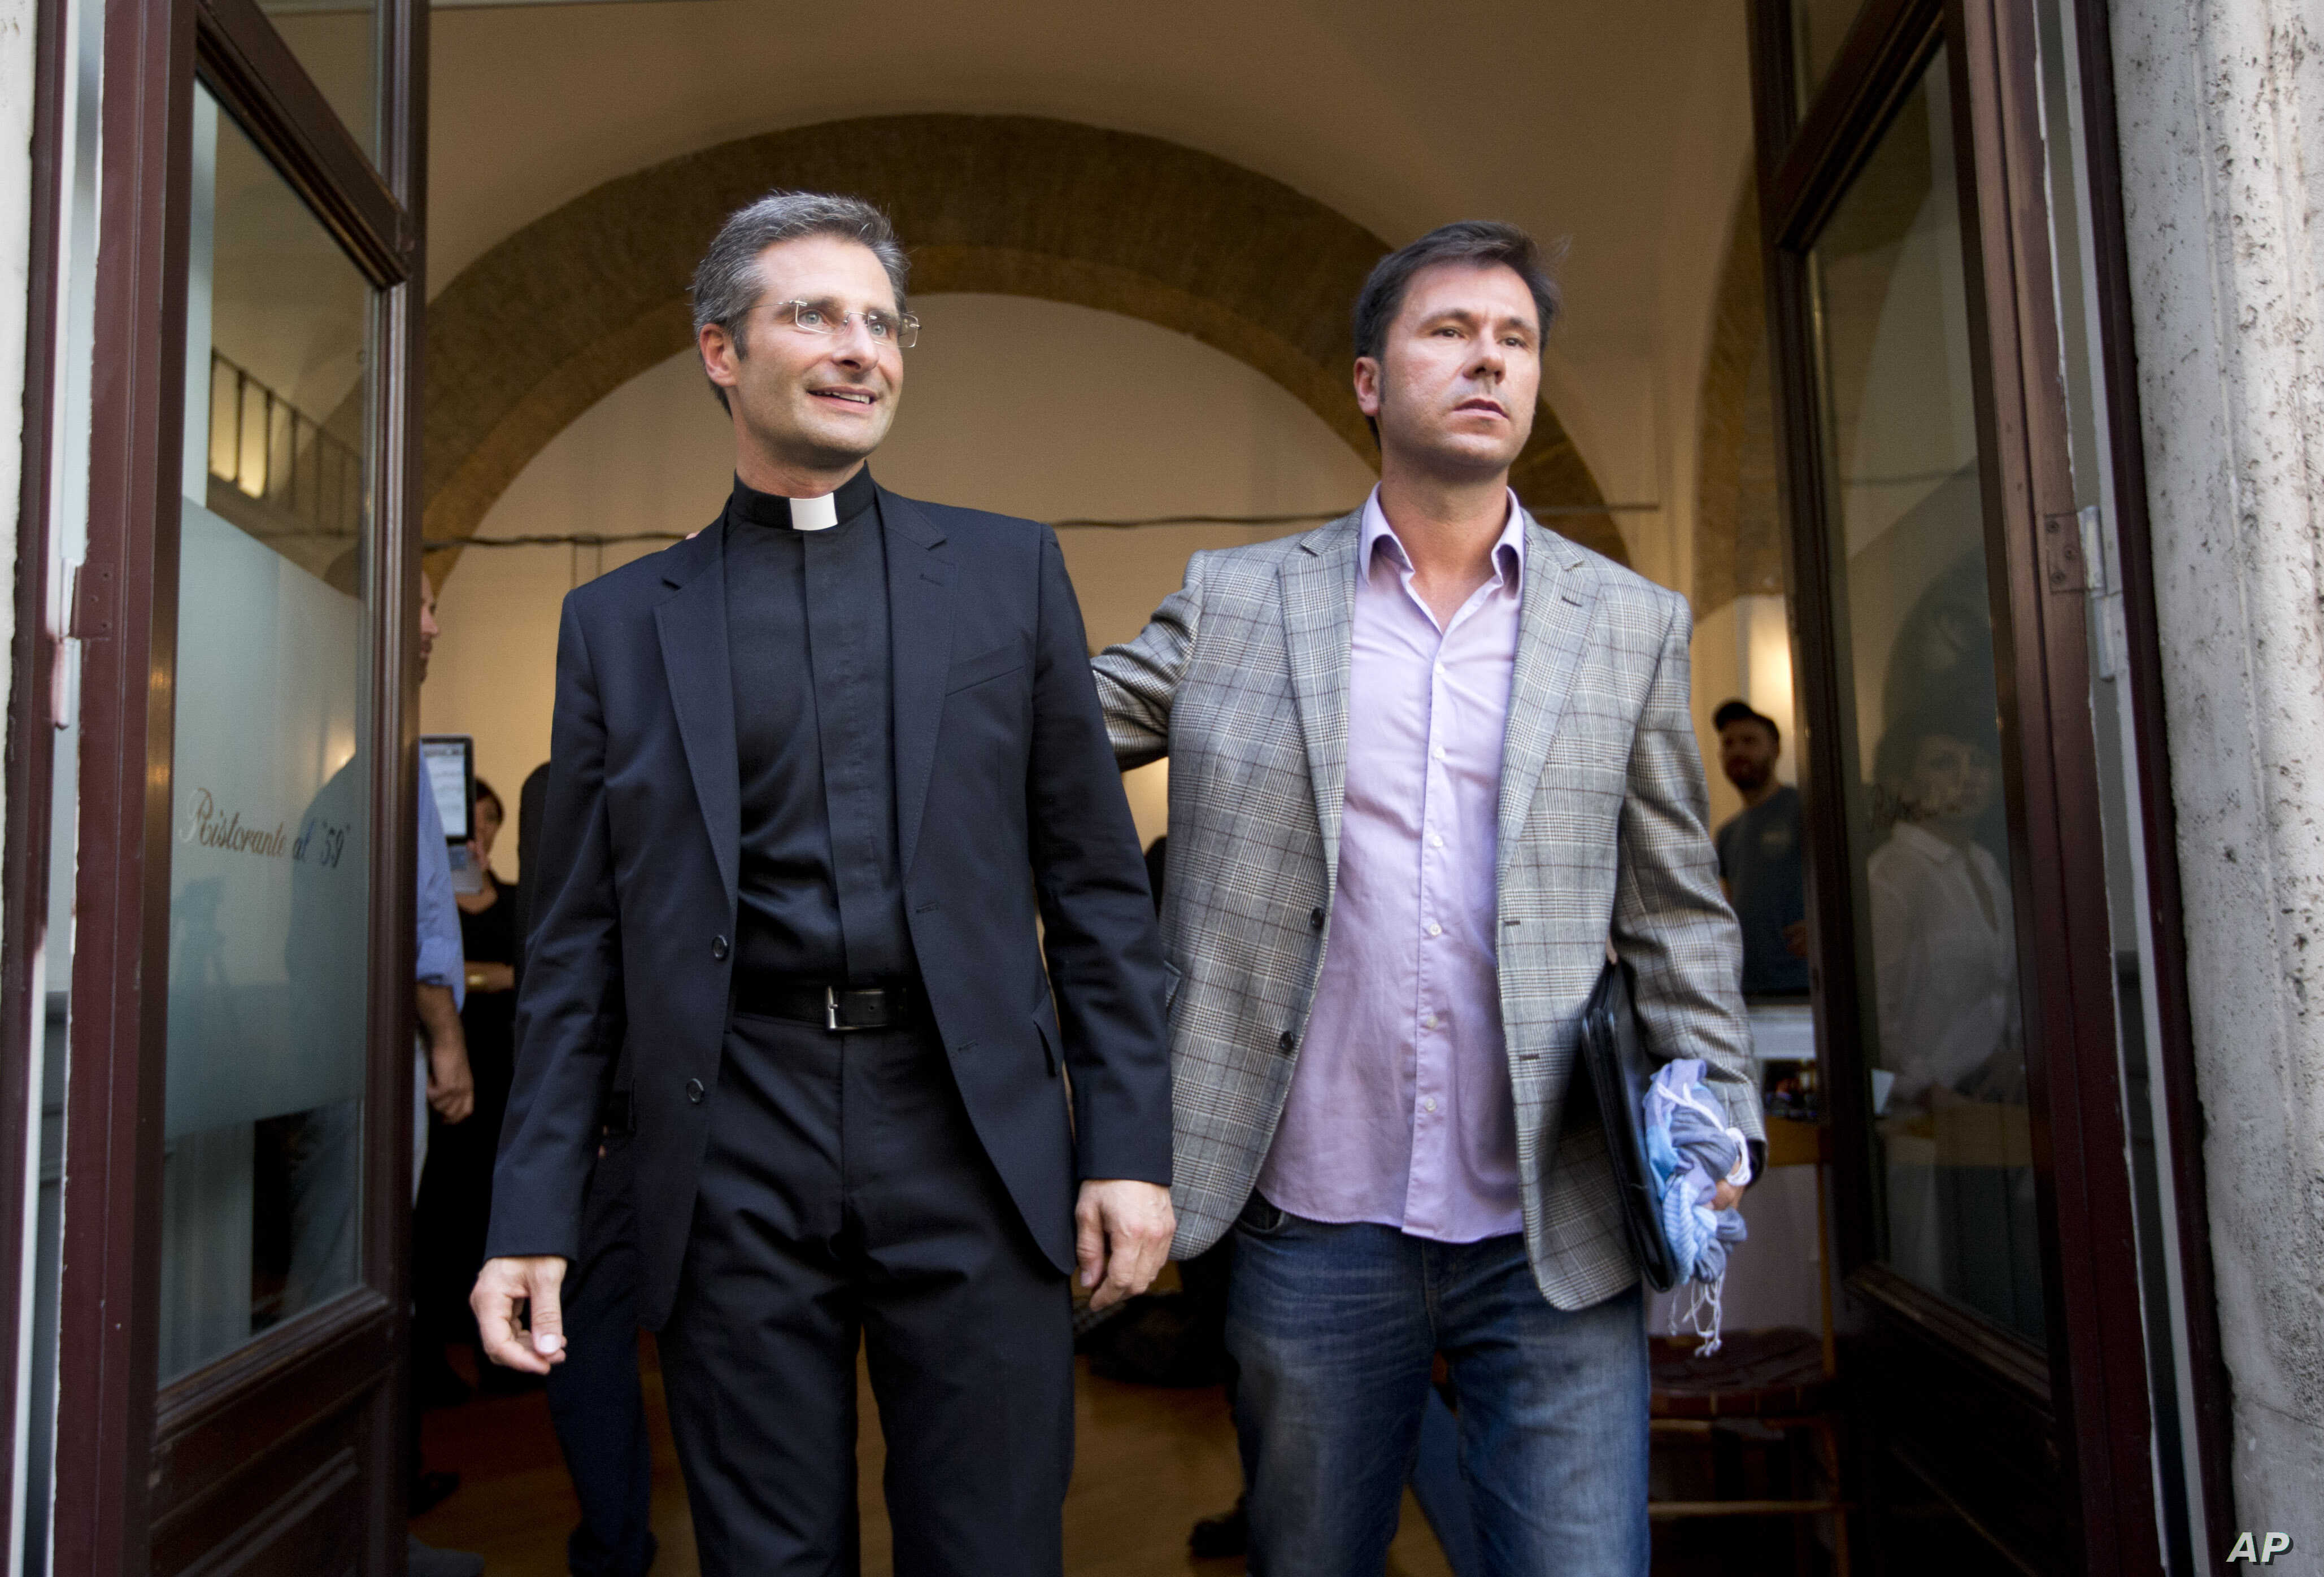 Monsignor Krzysztof Charamsa, left, and his boyfriend Eduard, surname not given, pose for a photo as they leave a restaurant after a news conference in downtown Rome, Oct. 3, 2015.